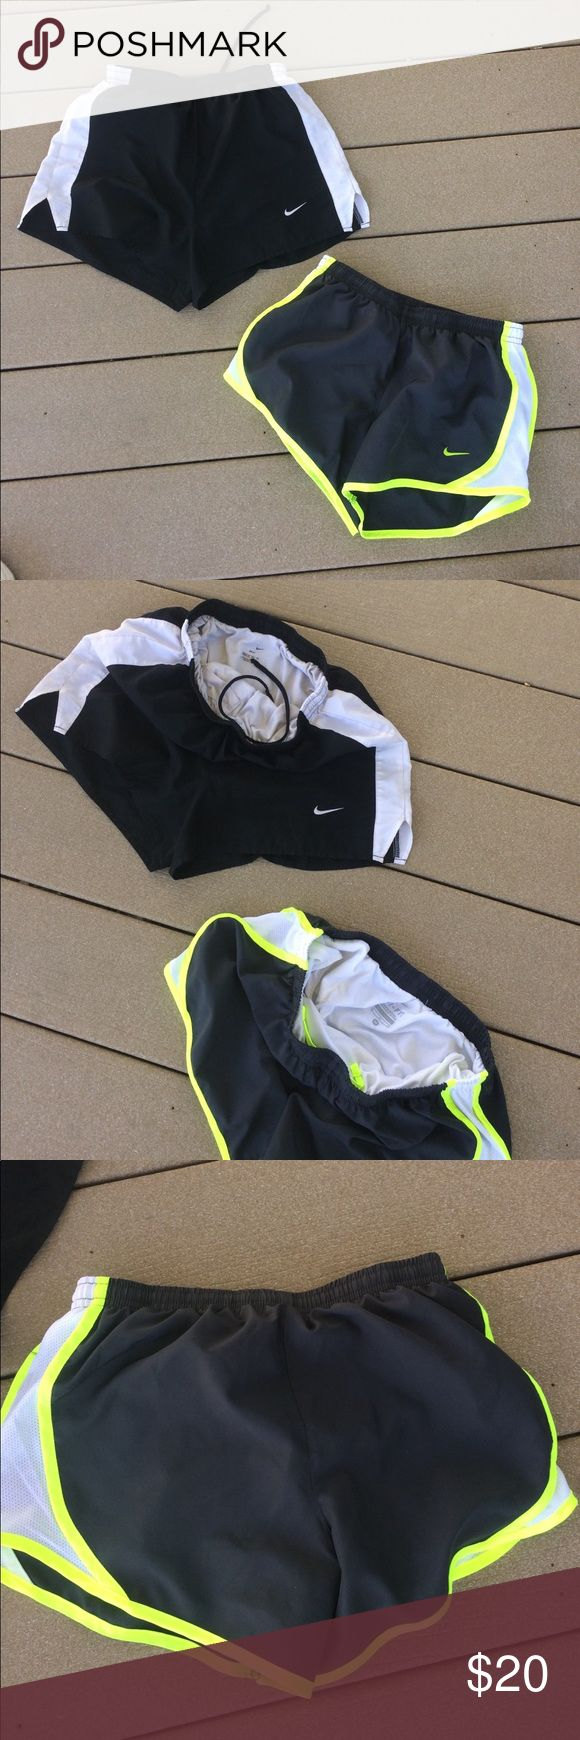 Girls Nike shorts size m Good shape black yellow are in great shape other pair has small mark on back Nike Bottoms Shorts